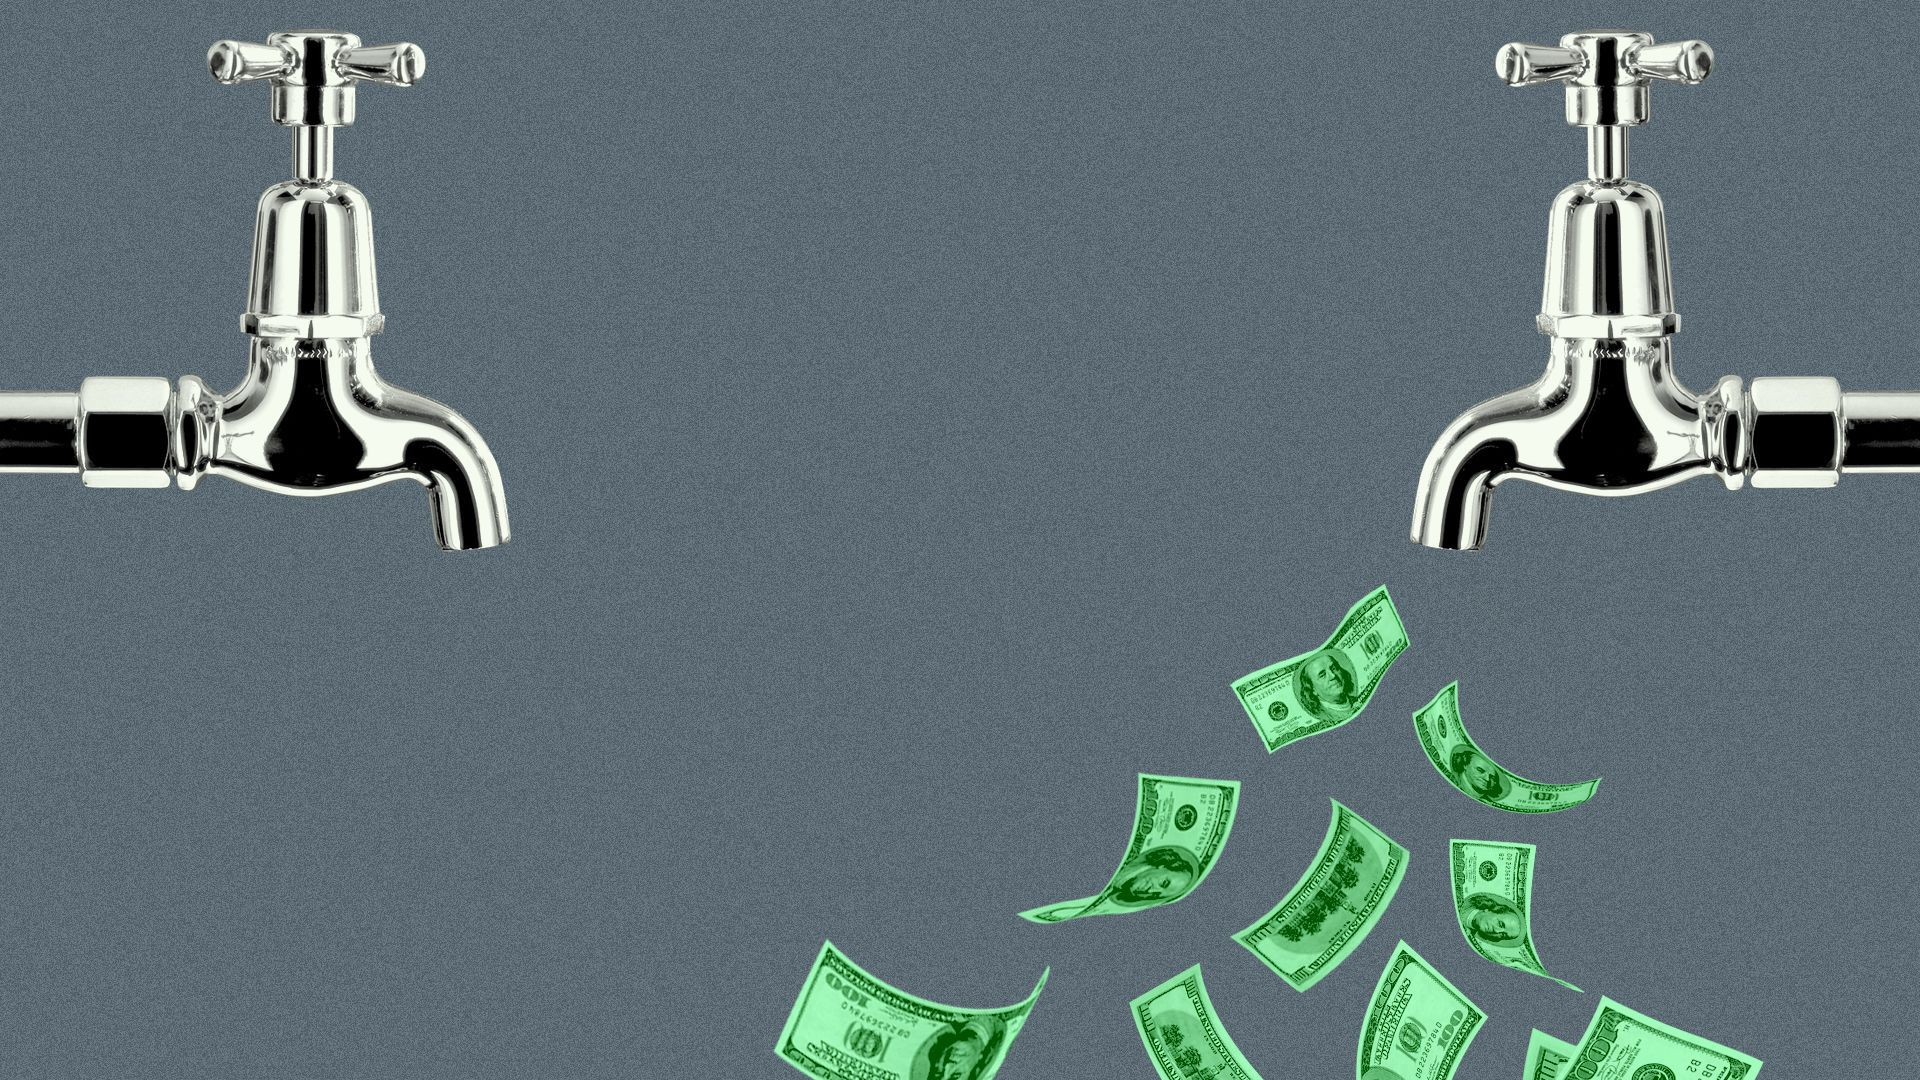 Illustration of two faucets, one dry and one with hundred dollar bills coming out of it.